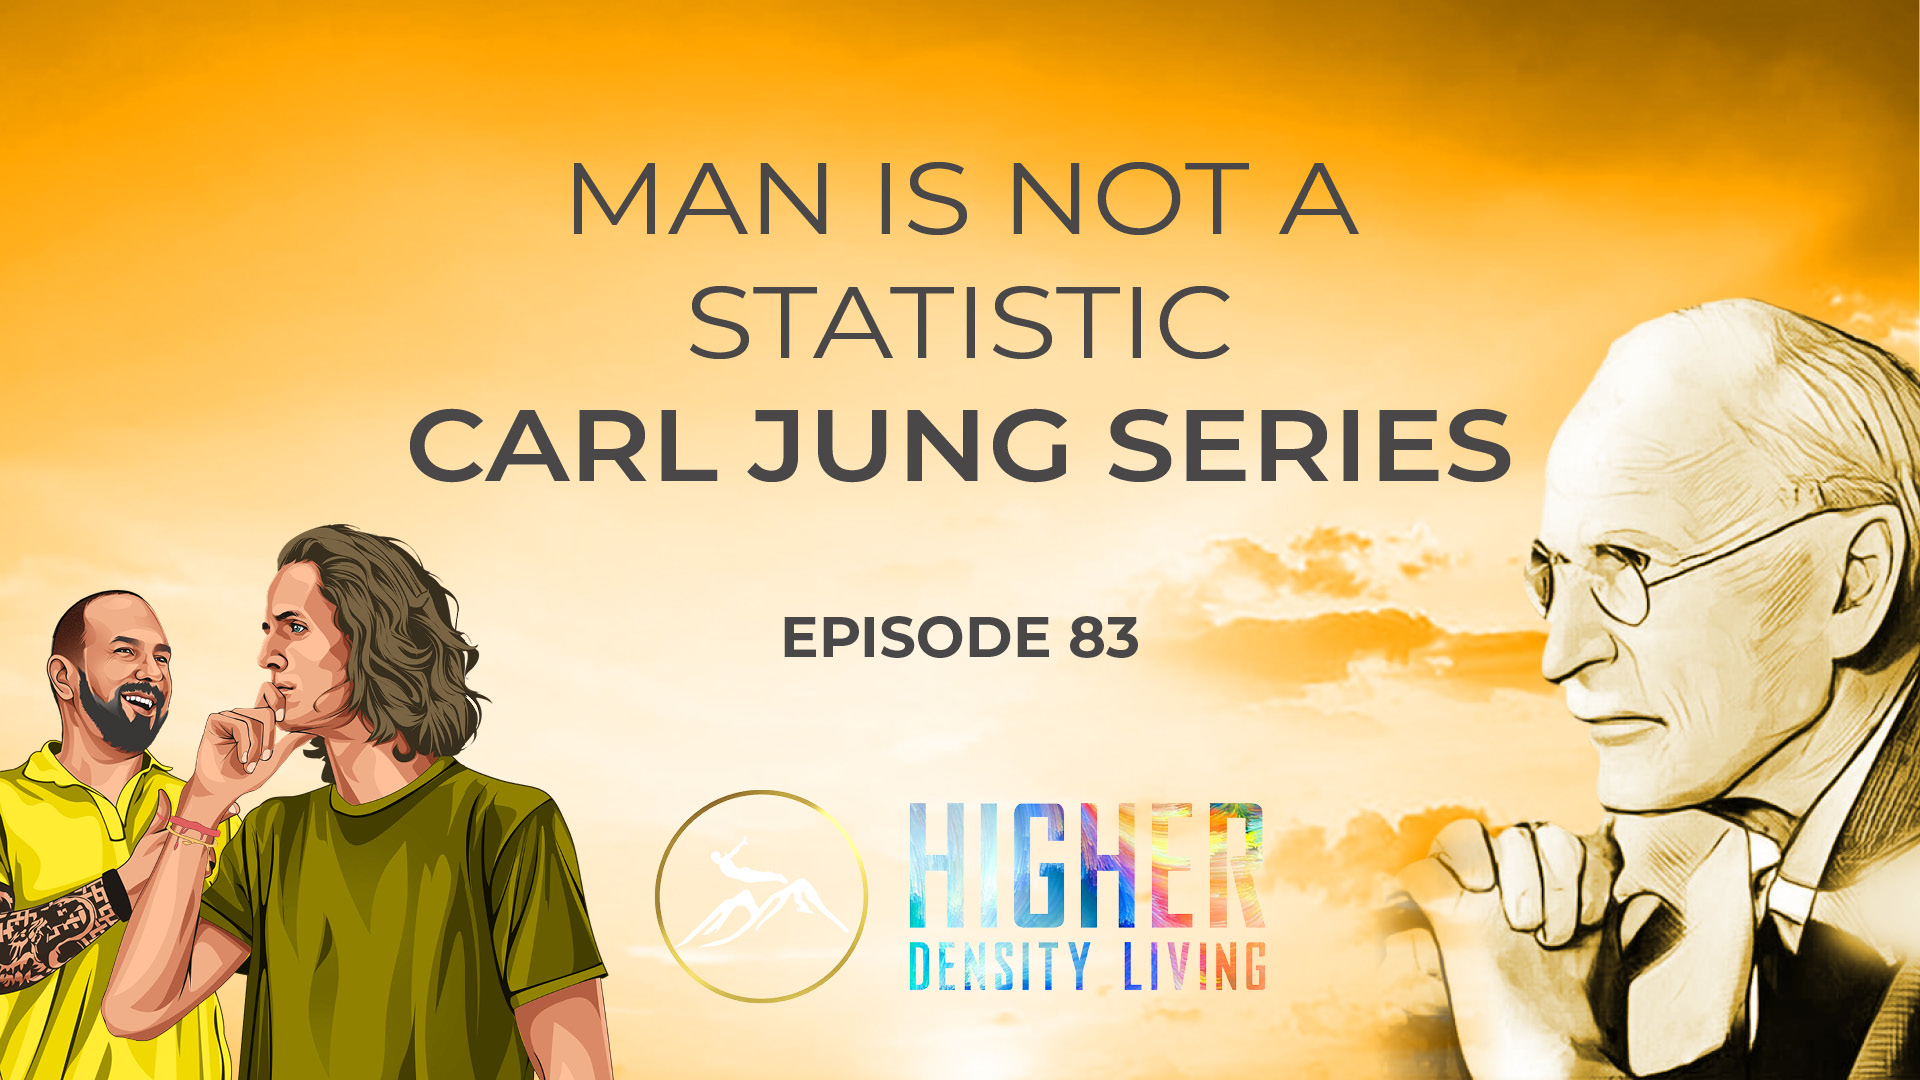 Man Is Not a Statistic